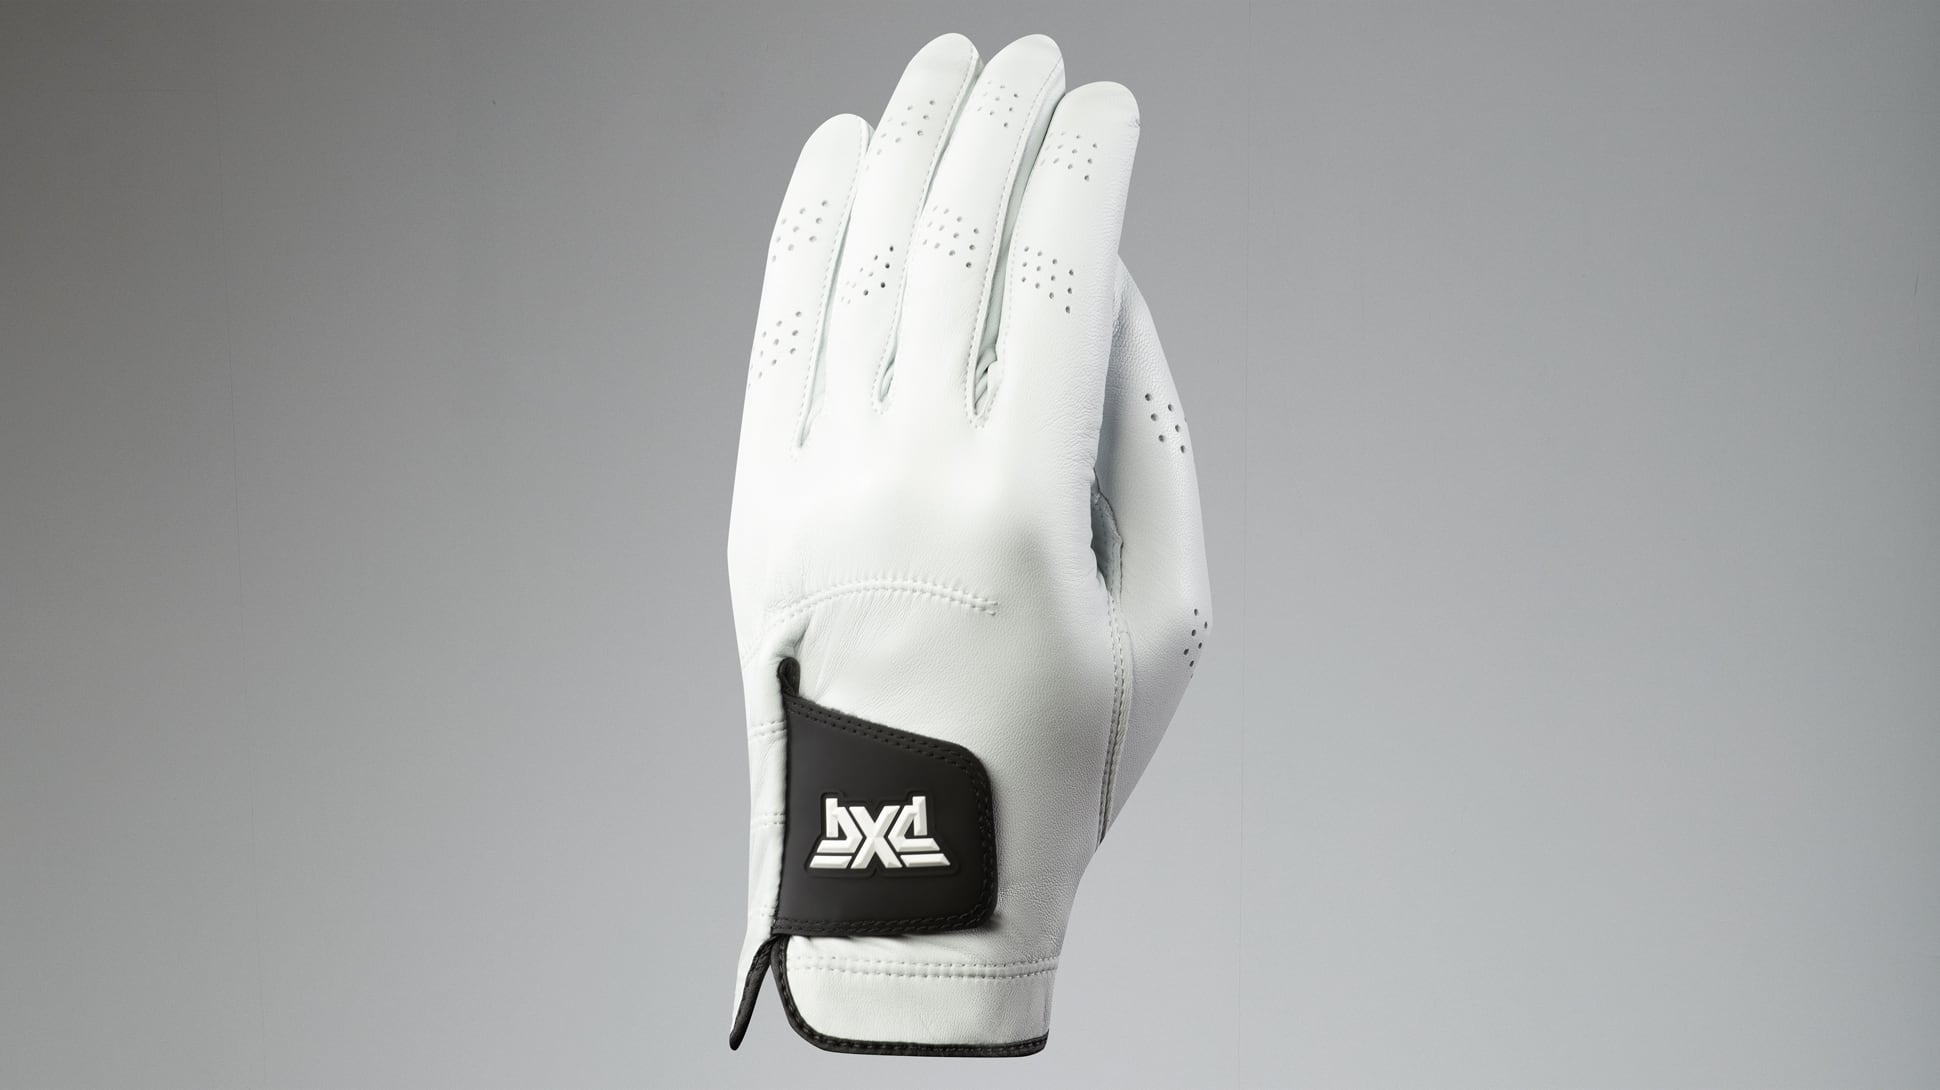 Men's Players Glove Image 3